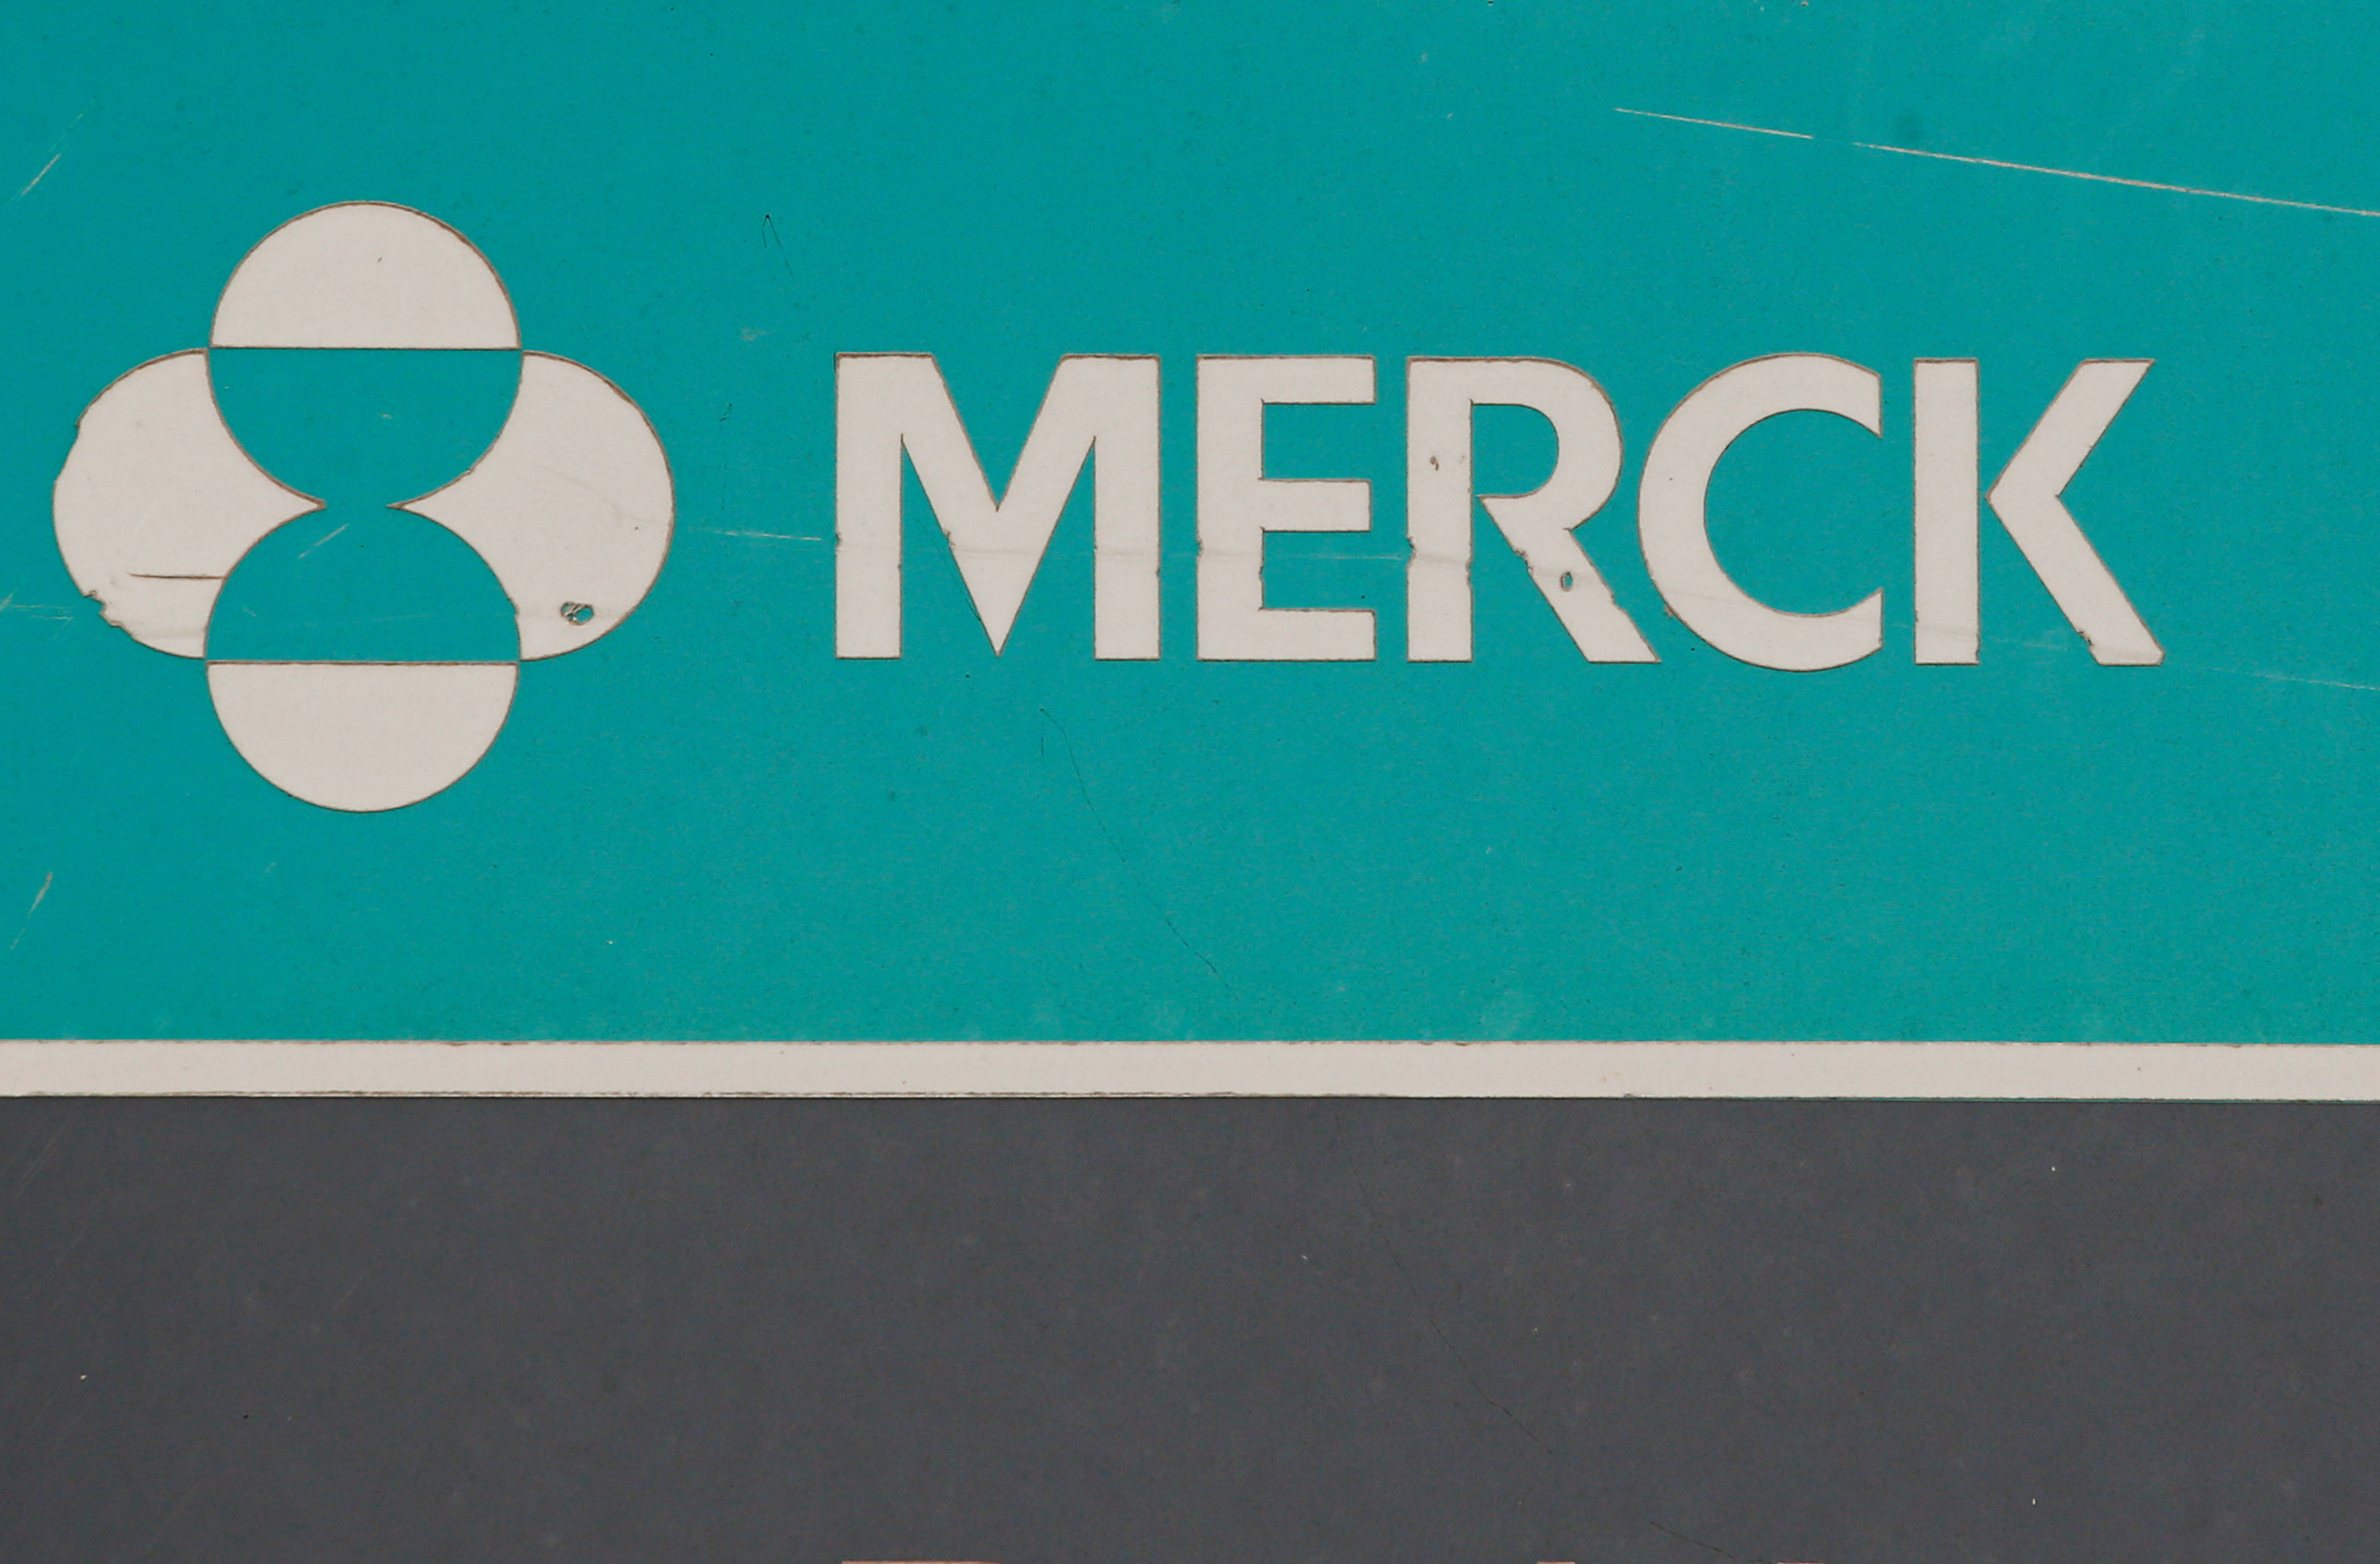 The Merck logo is seen on a sign at the Merck & Co campus in Rahway, New Jersey, U.S., July 12, 2018. REUTERS/Brendan McDermid/Files